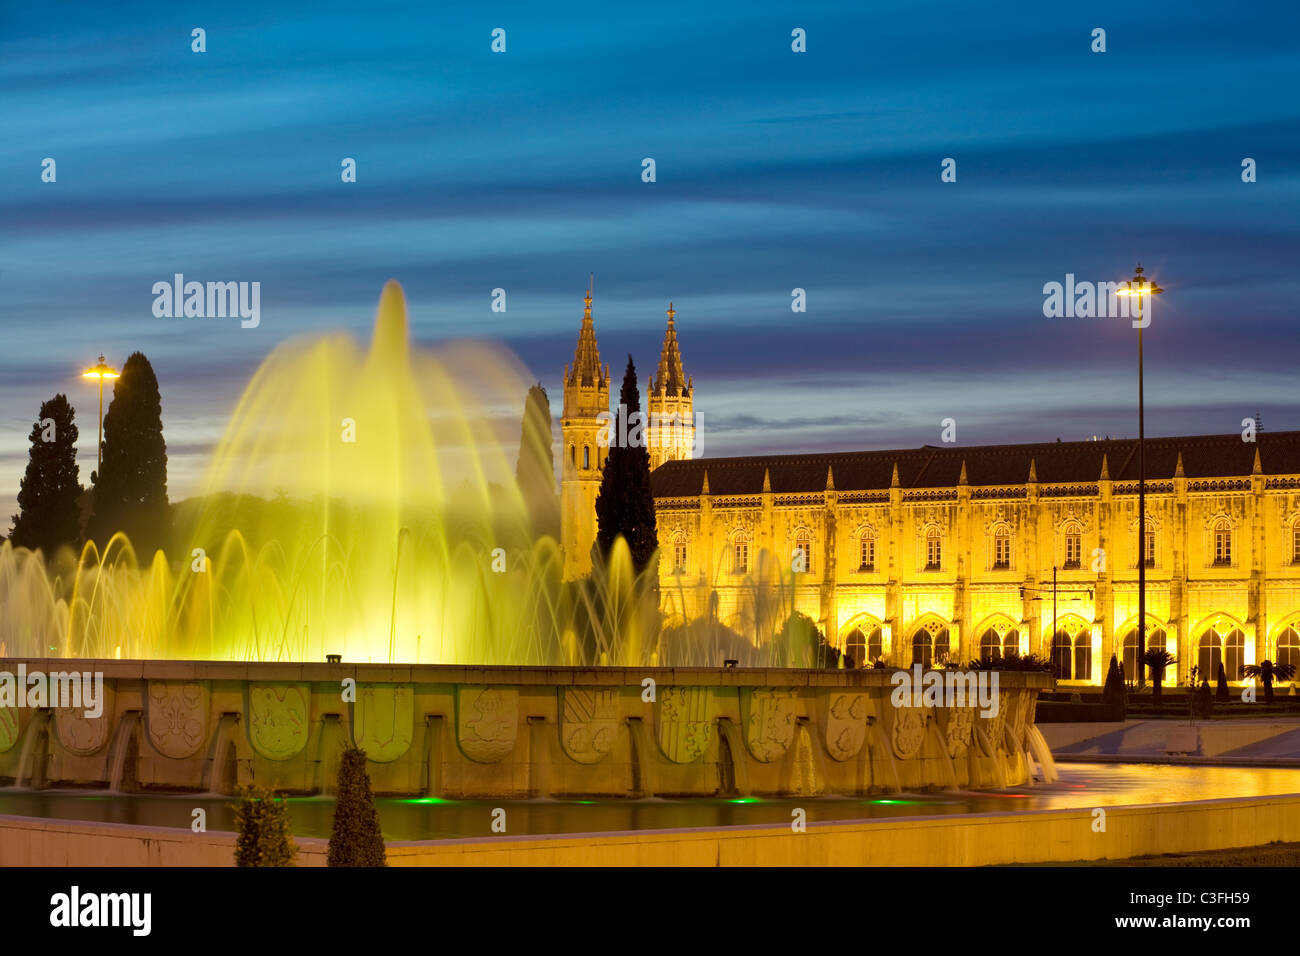 Jeronimos Monastery and fountain in Imperial Plaza, Belem, Lisbon, Portugal - Stock Image